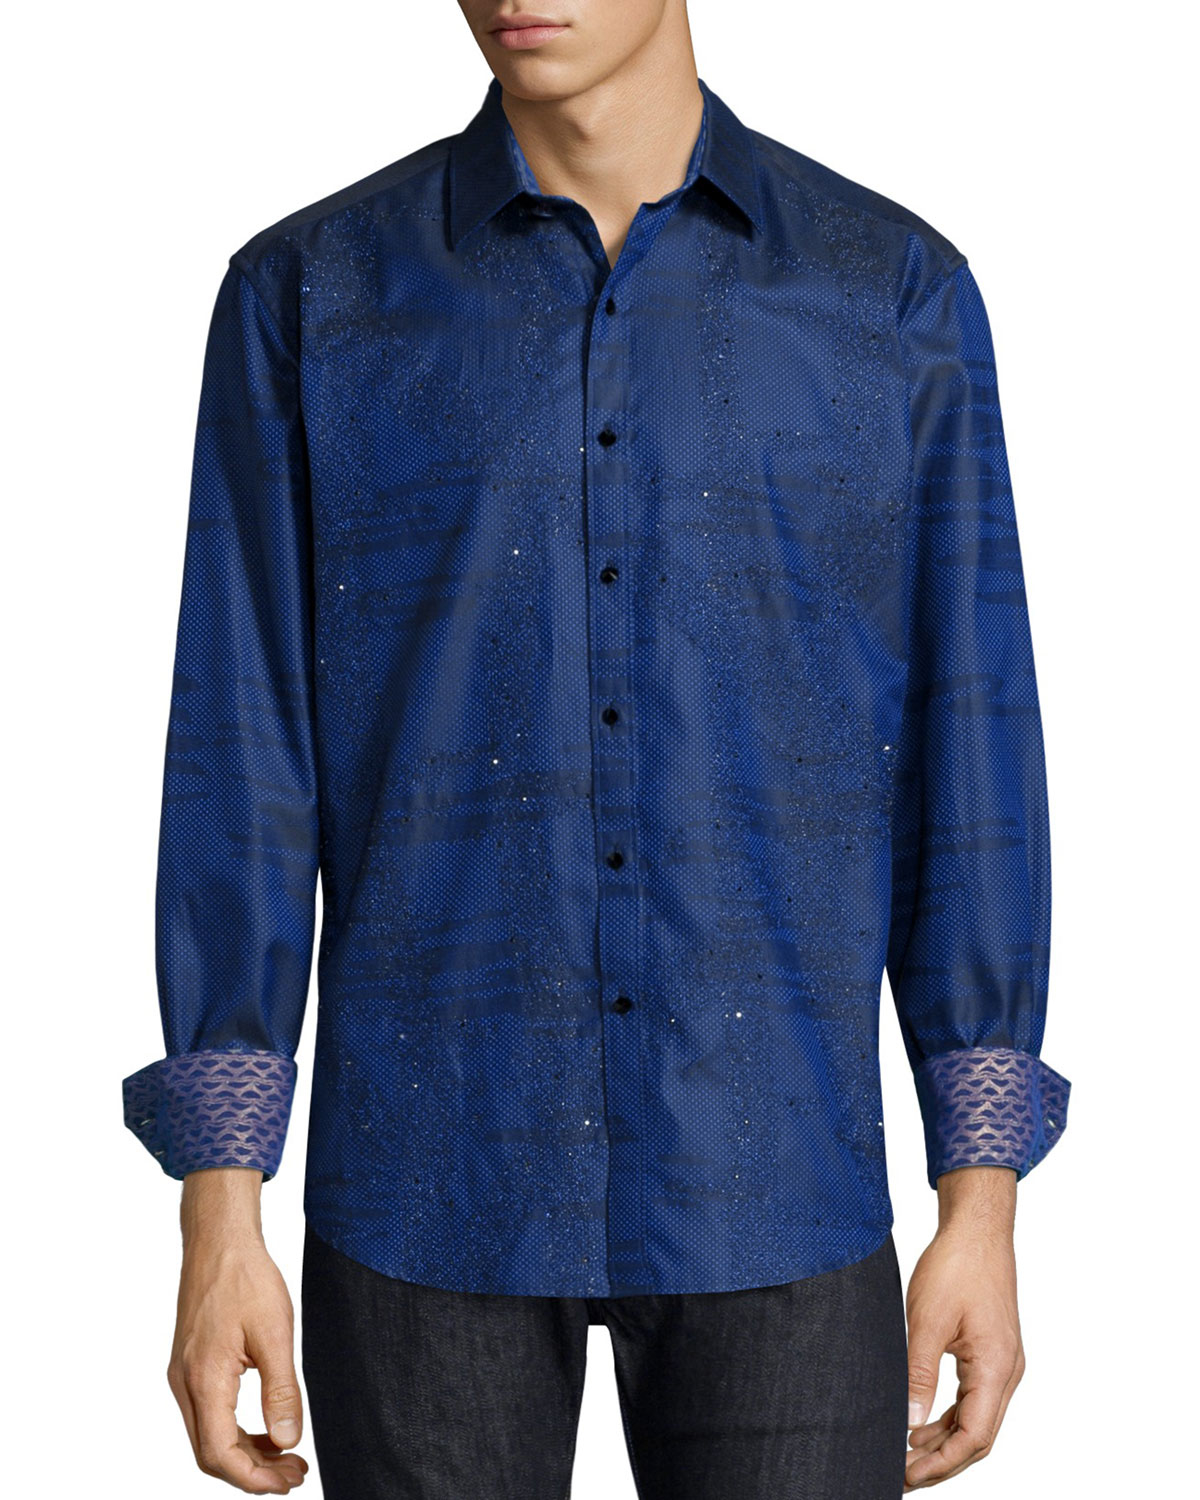 Robert graham printed long sleeve sport shirt in blue for for Where are robert graham shirts made